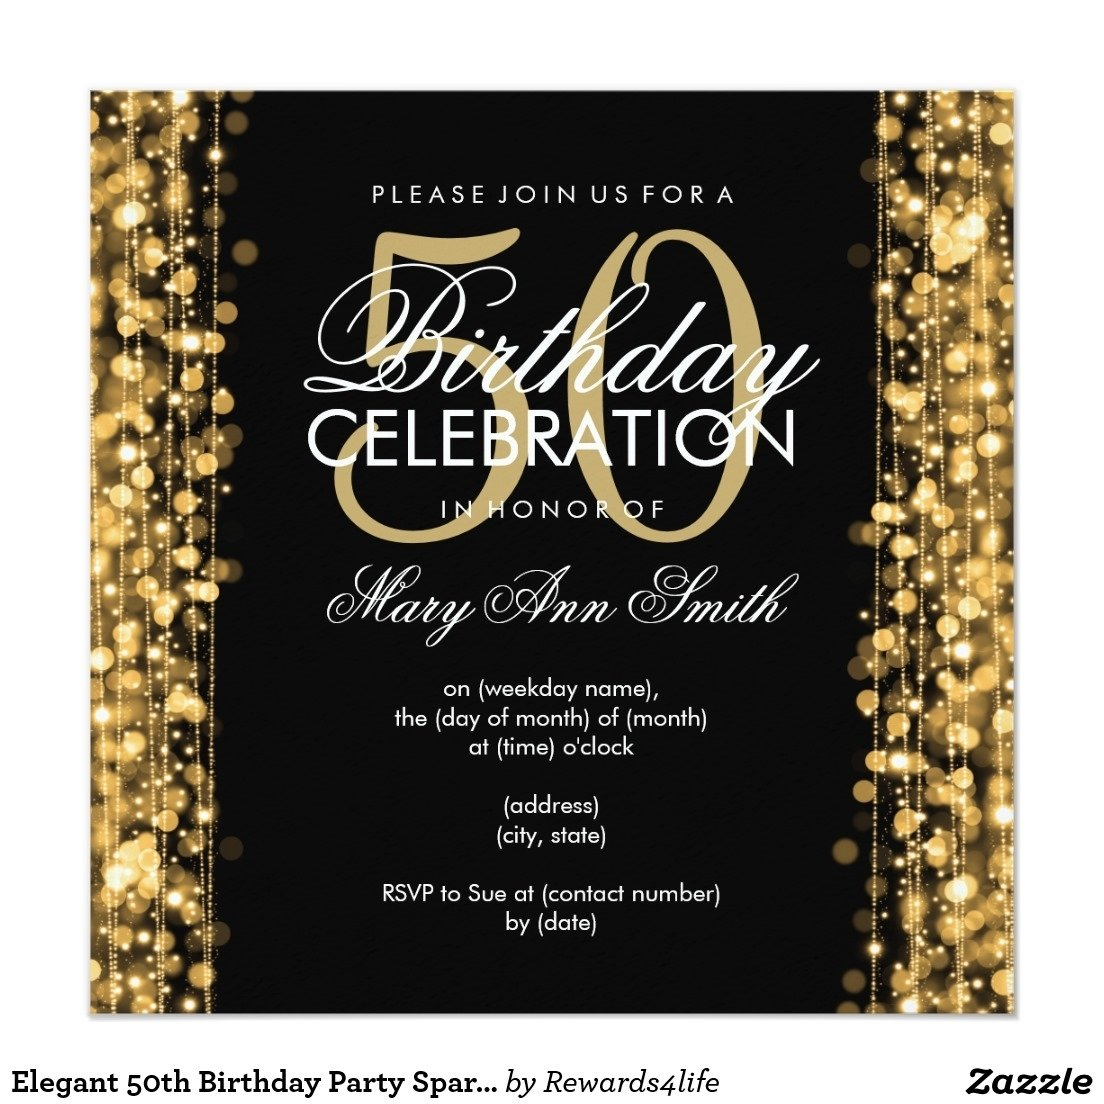 10 Best 50Th Birthday Party Invitations Ideas 14 50 birthday invitations designs free sample templates 2020